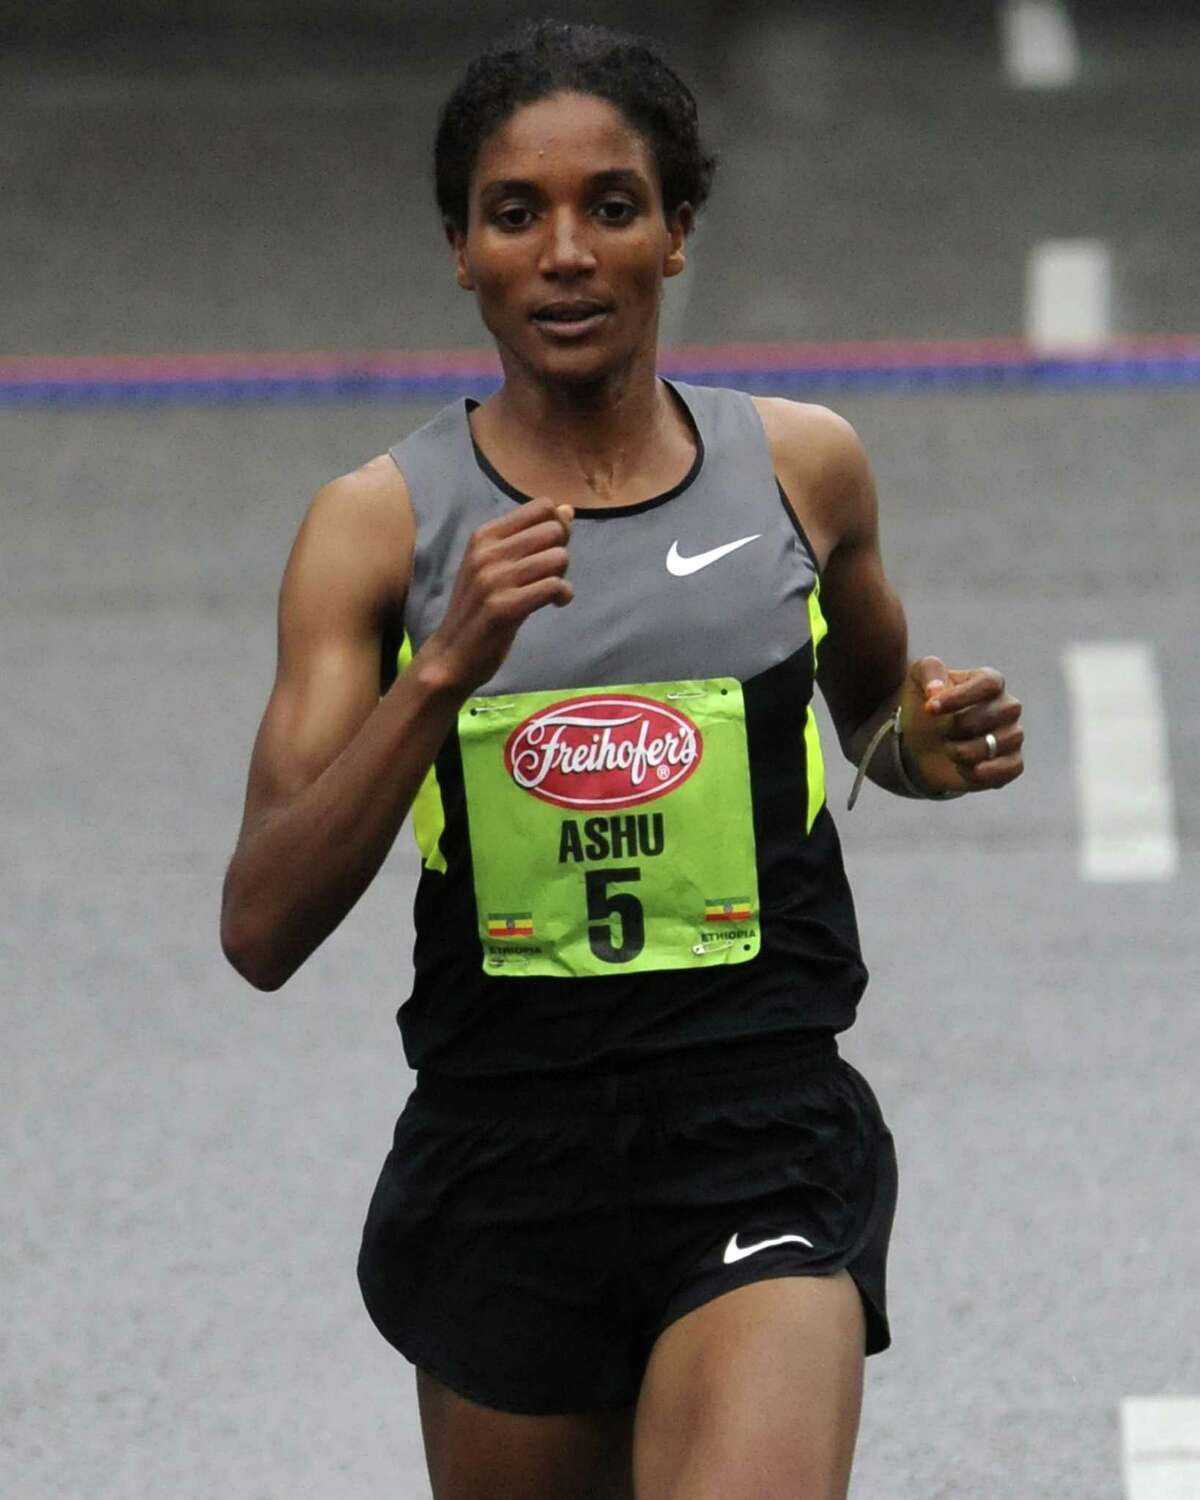 Ashu Kasim finishes second in the 34rd annual Freihofer's Run for Women in Albany N.Y. Saturday June 2, 2012. (Michael P. Farrell/Times Union)